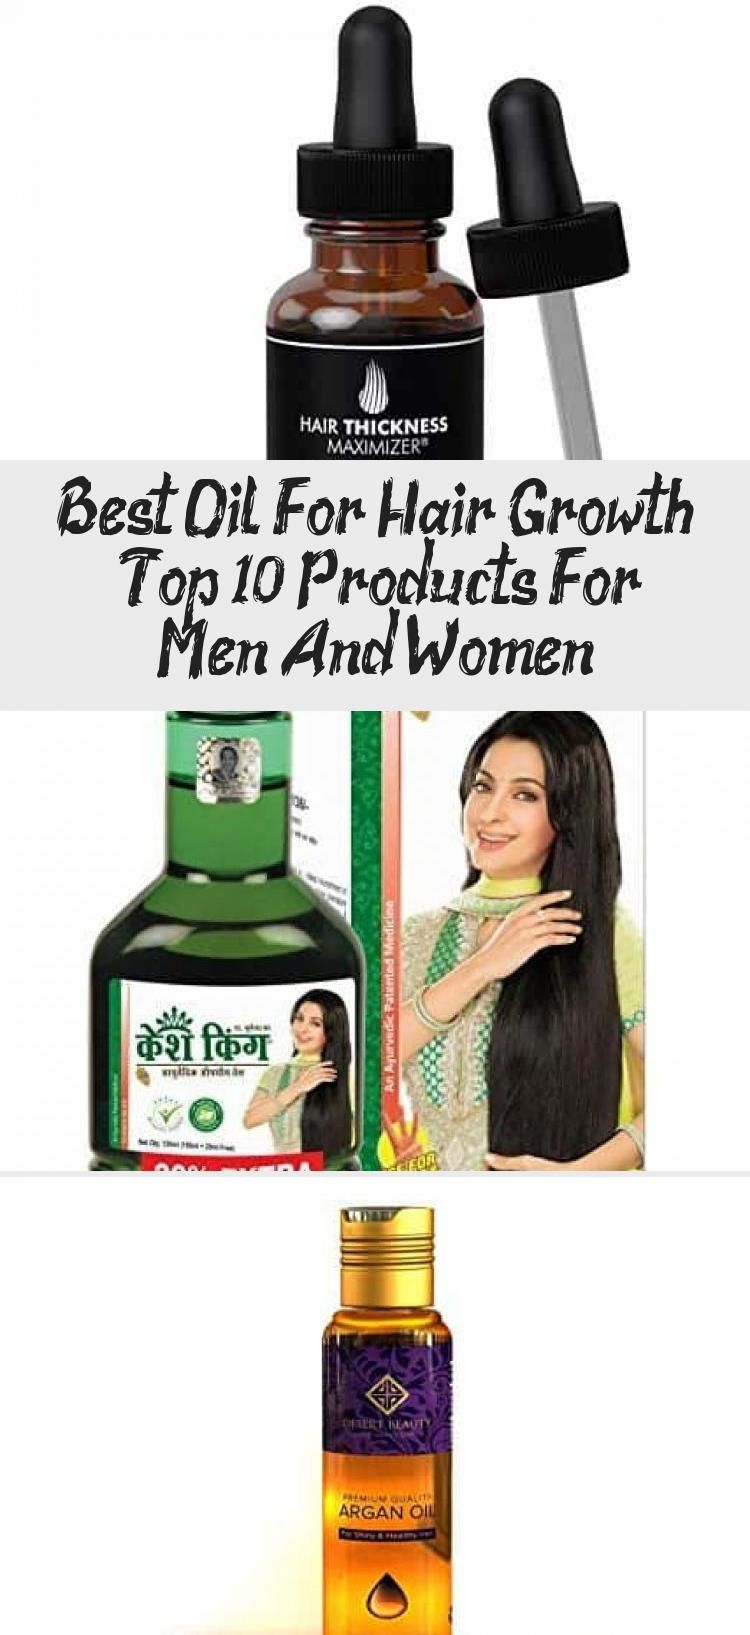 Hair Growth Supplement} and Best Oil For Hair Growth – Top 10 Products For Men And Women #hairgrowthSerum #hairgrowthSupplement #hairgrowthBeforeAndAfter #Babyhairgrowth #hairgrowthThicker